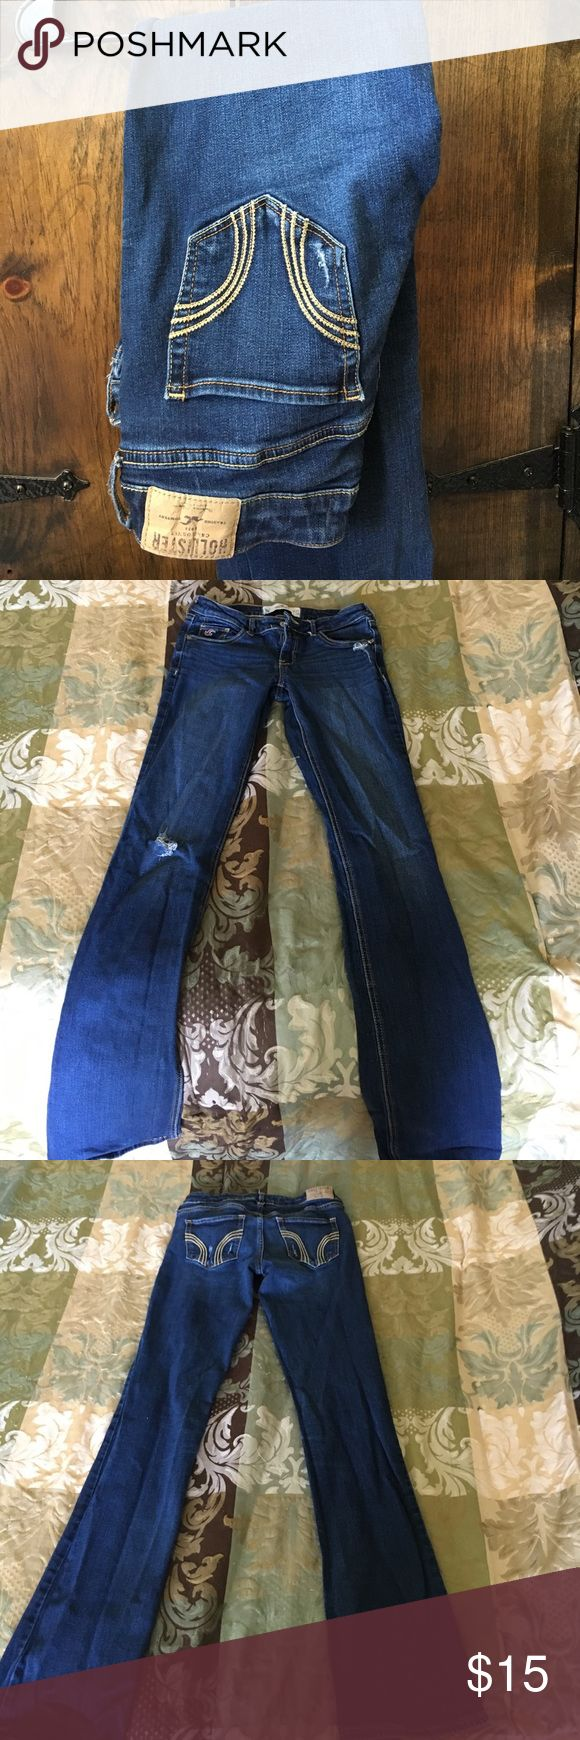 Hollister boot cut jeans Lightly worn, no rips or tears that were not bought with the jeans. Hollister Jeans Boot Cut